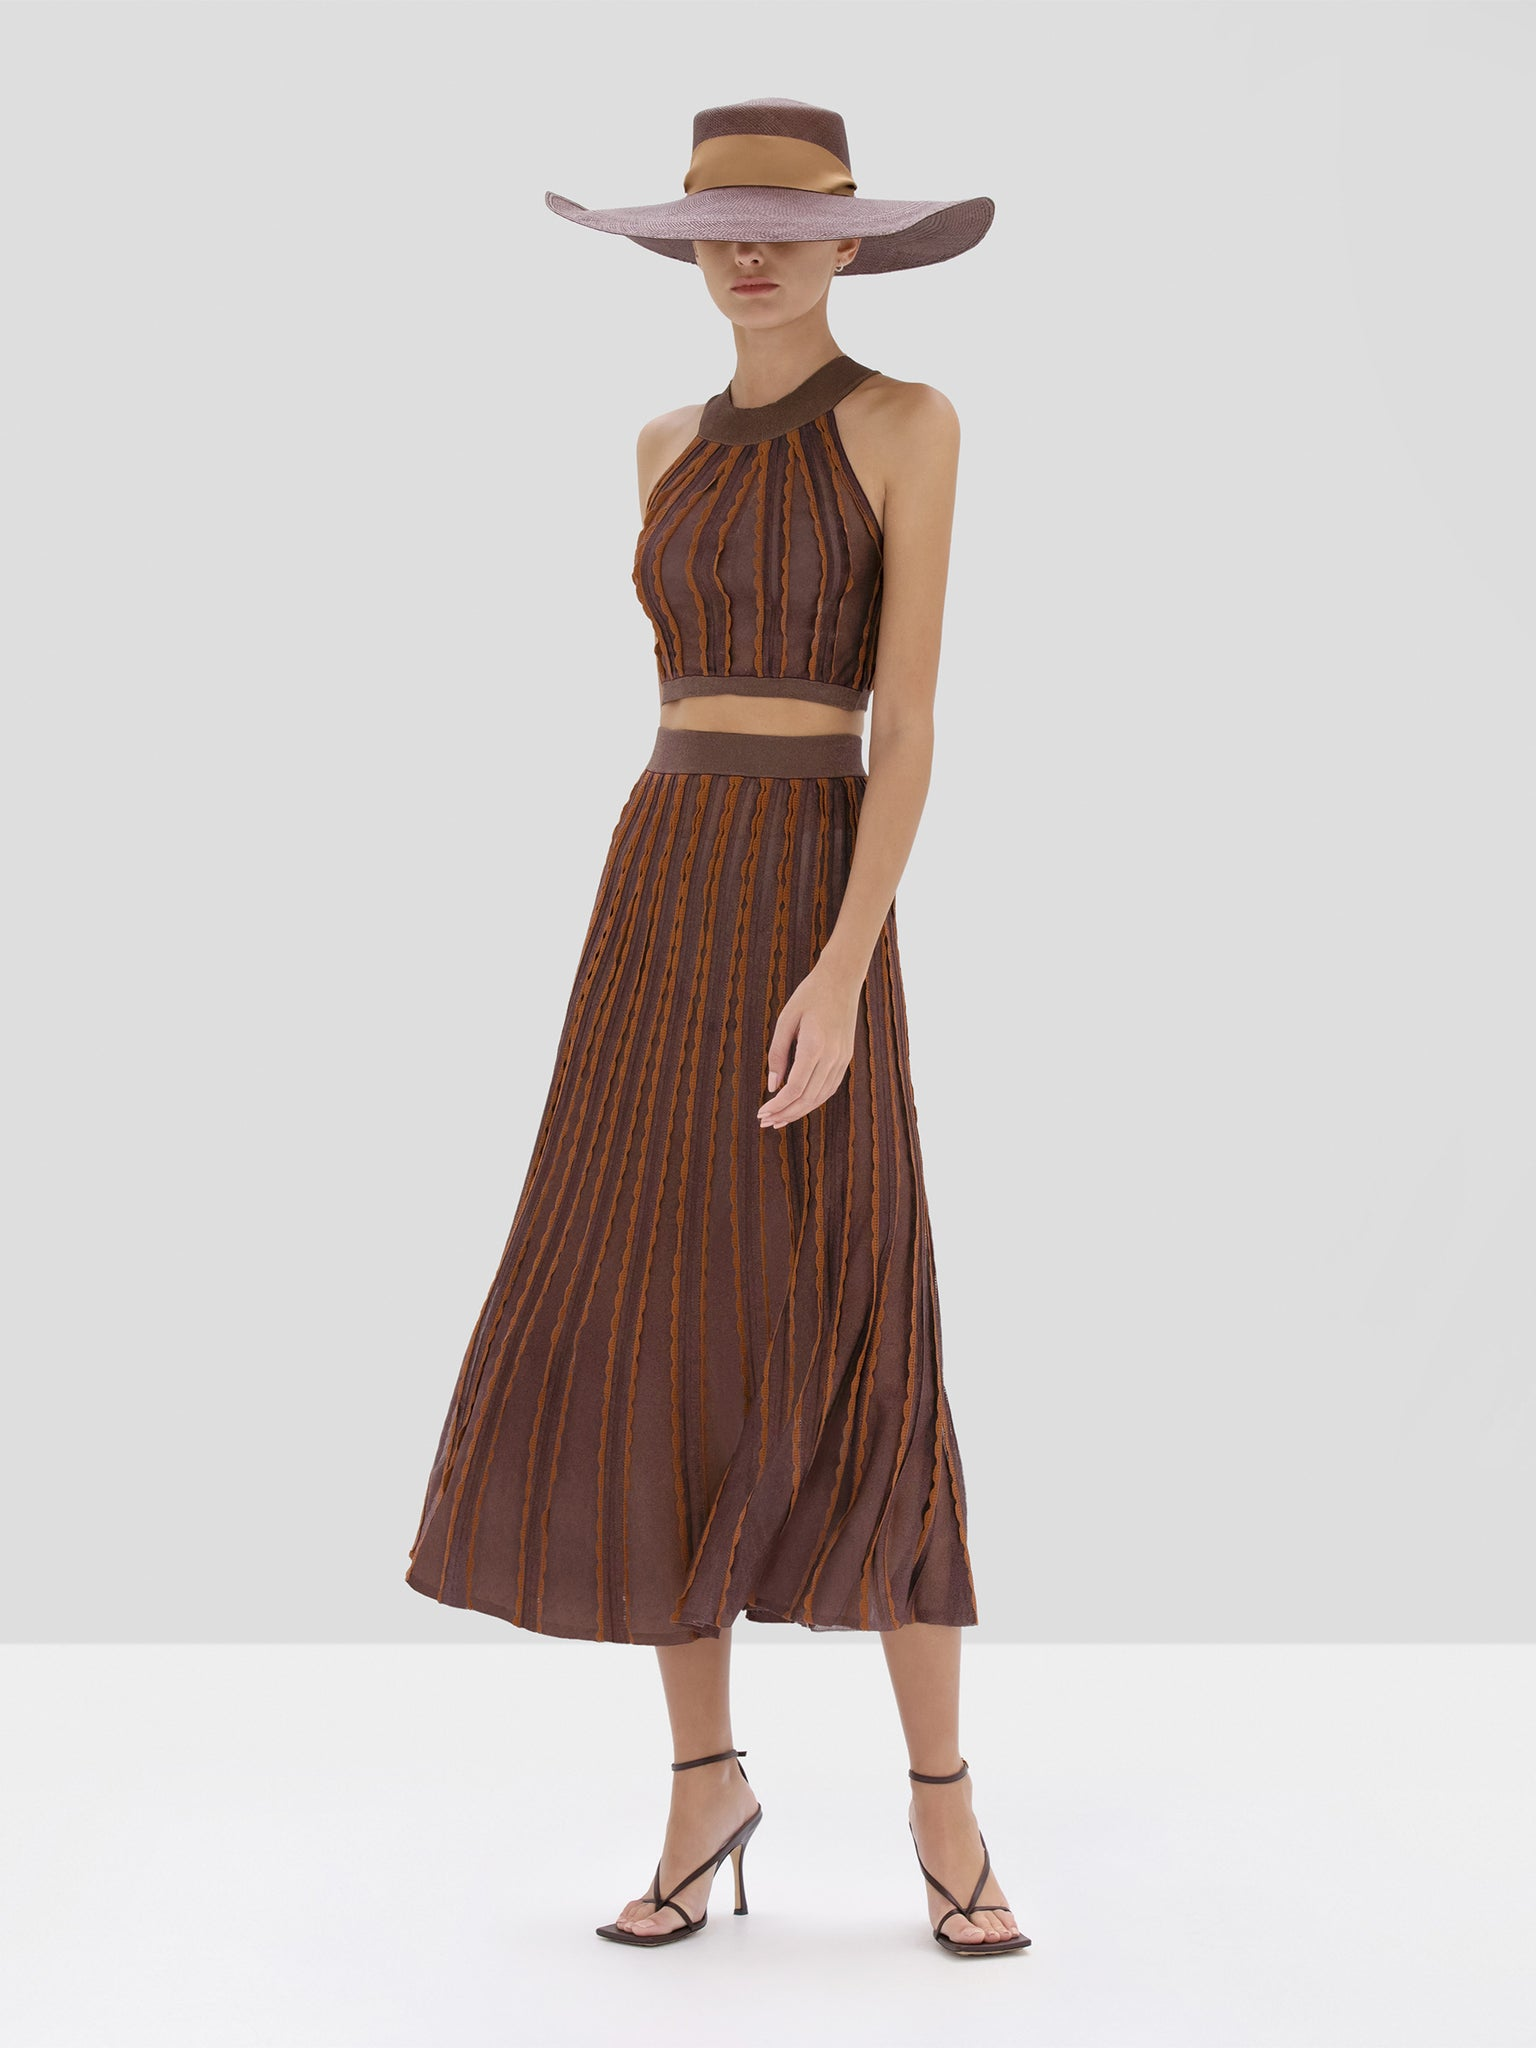 Alexis Keva Crop Top and Zea Skirt in Mocha from Spring Summer 2020 Collection